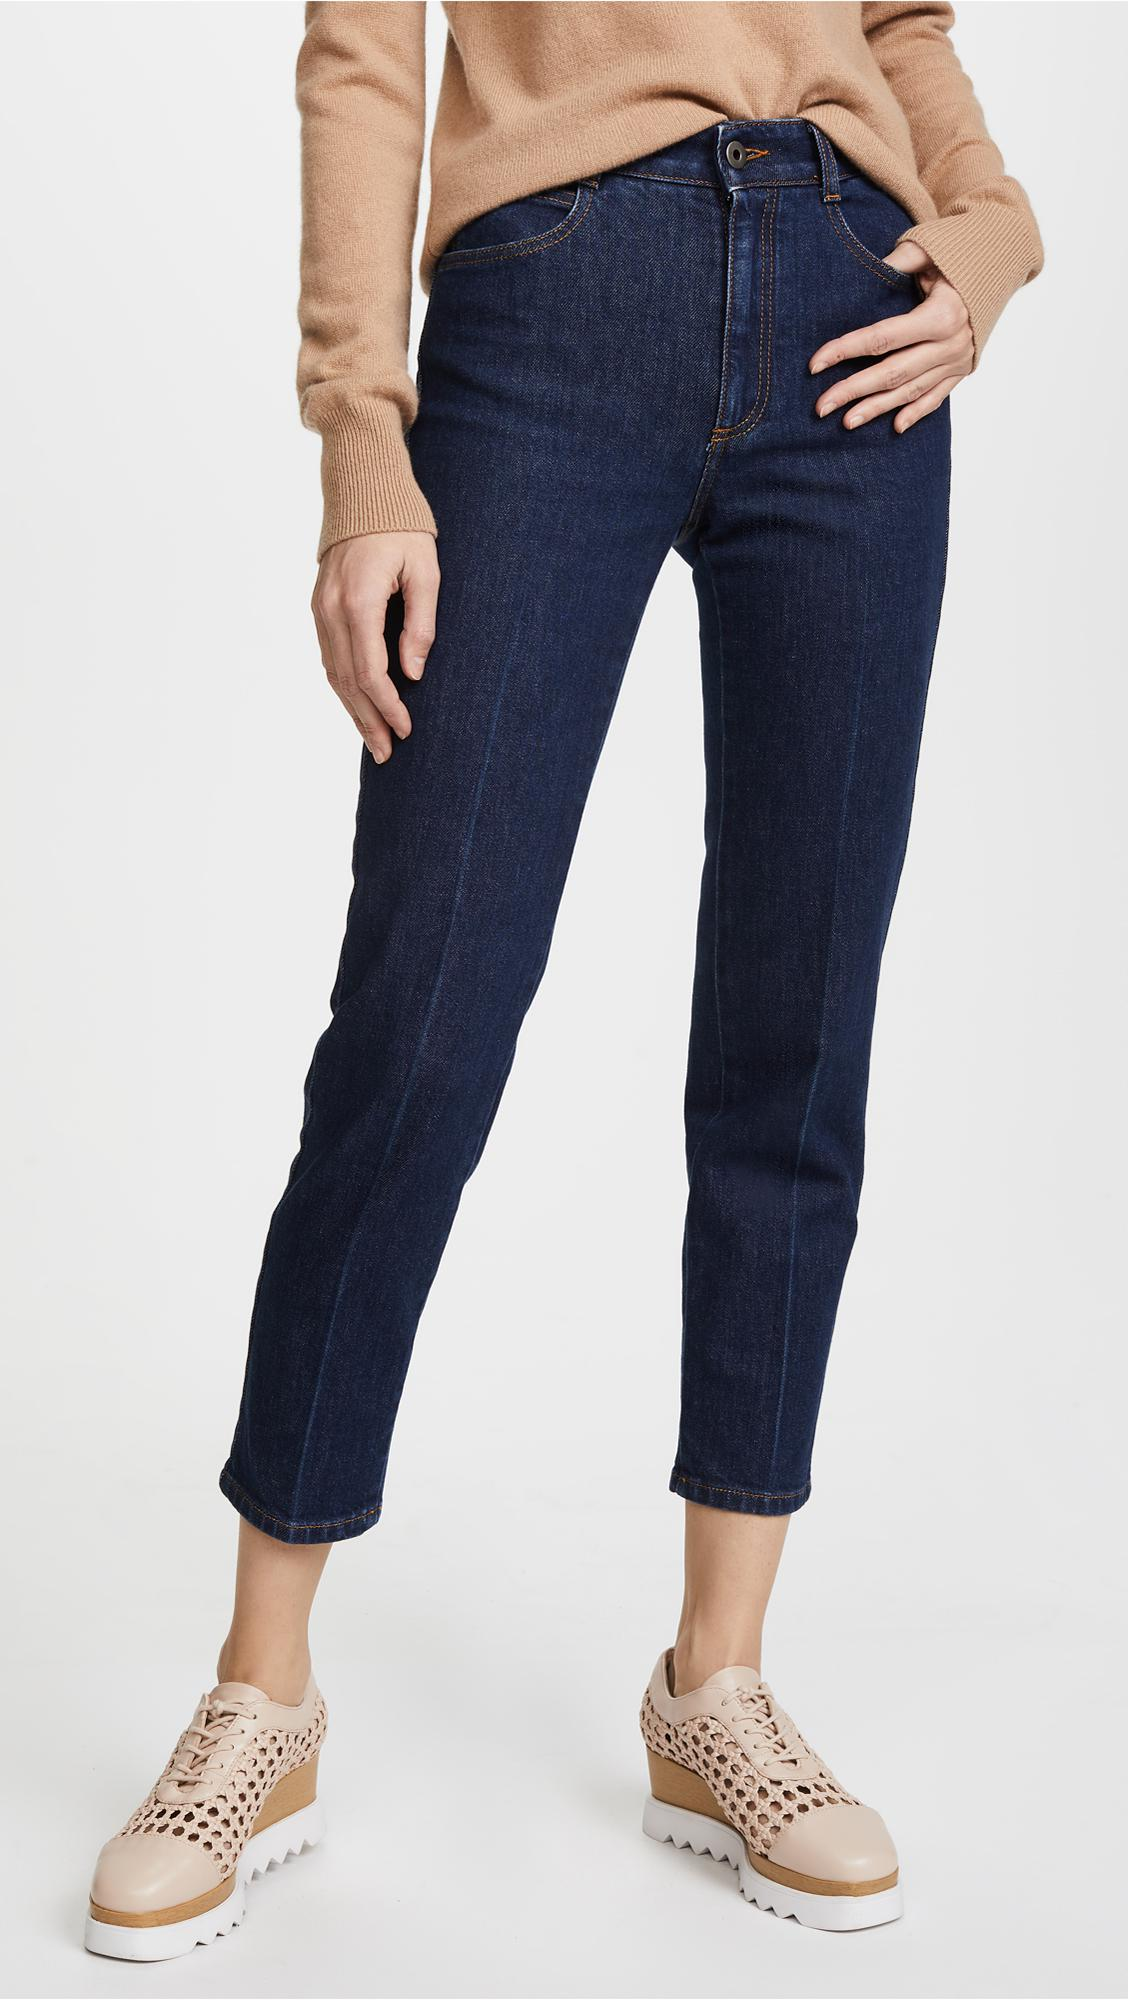 high-waisted slim jeans - Blue Stella McCartney Footlocker Pictures From China Cheap Online Best Place New Lower Prices Discount Fake a1PukG